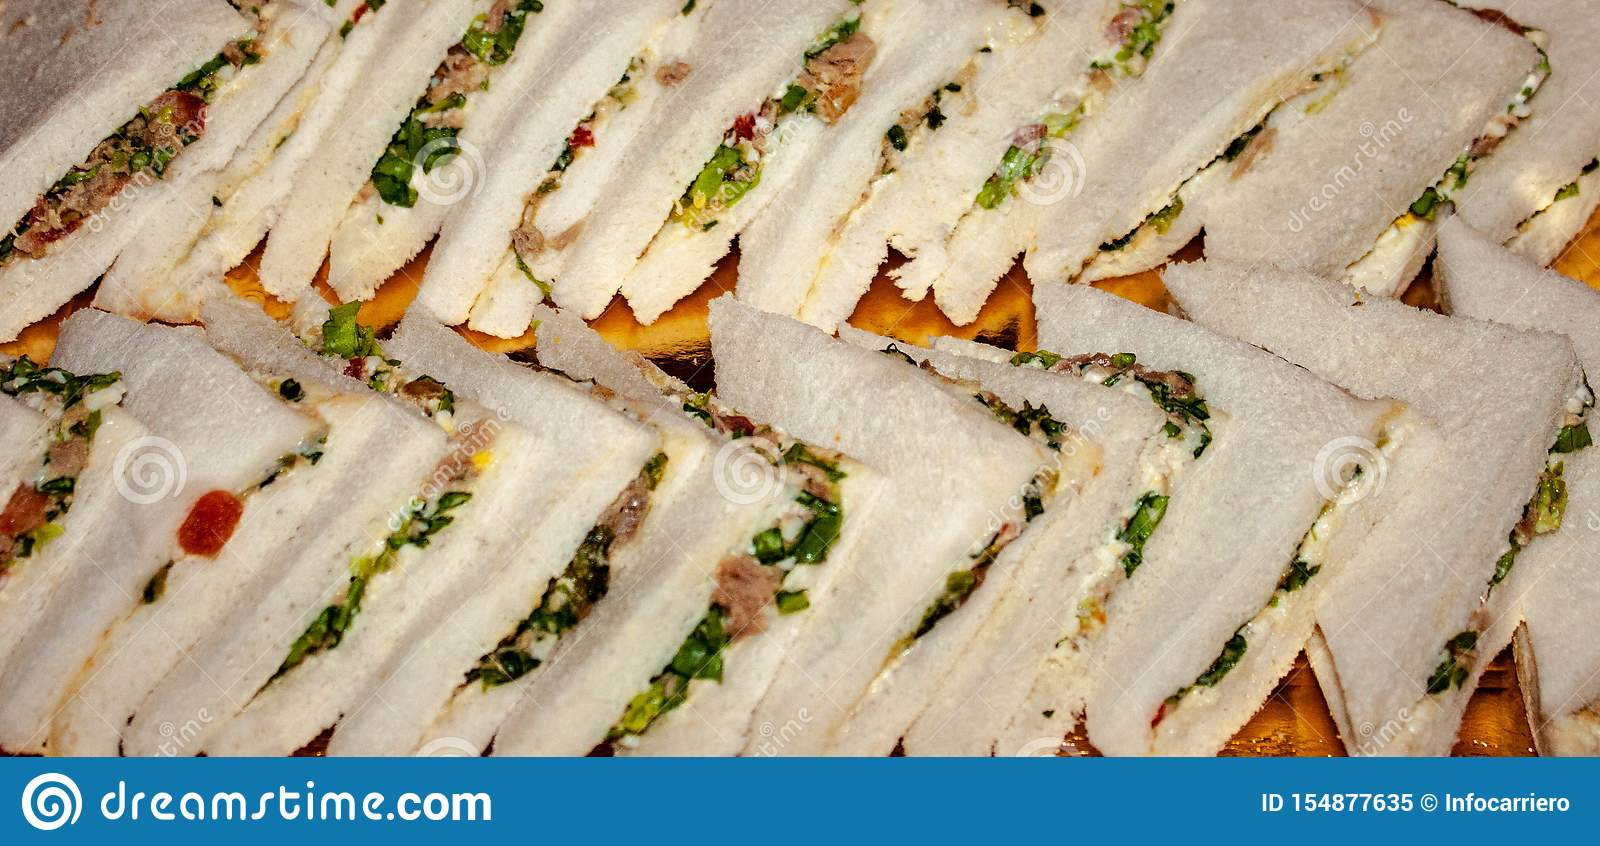 Tasty sandwiches ready to be enjoyed, placed on a tray, the sandwich, bread stuffed with what is considered the best is a sandwic